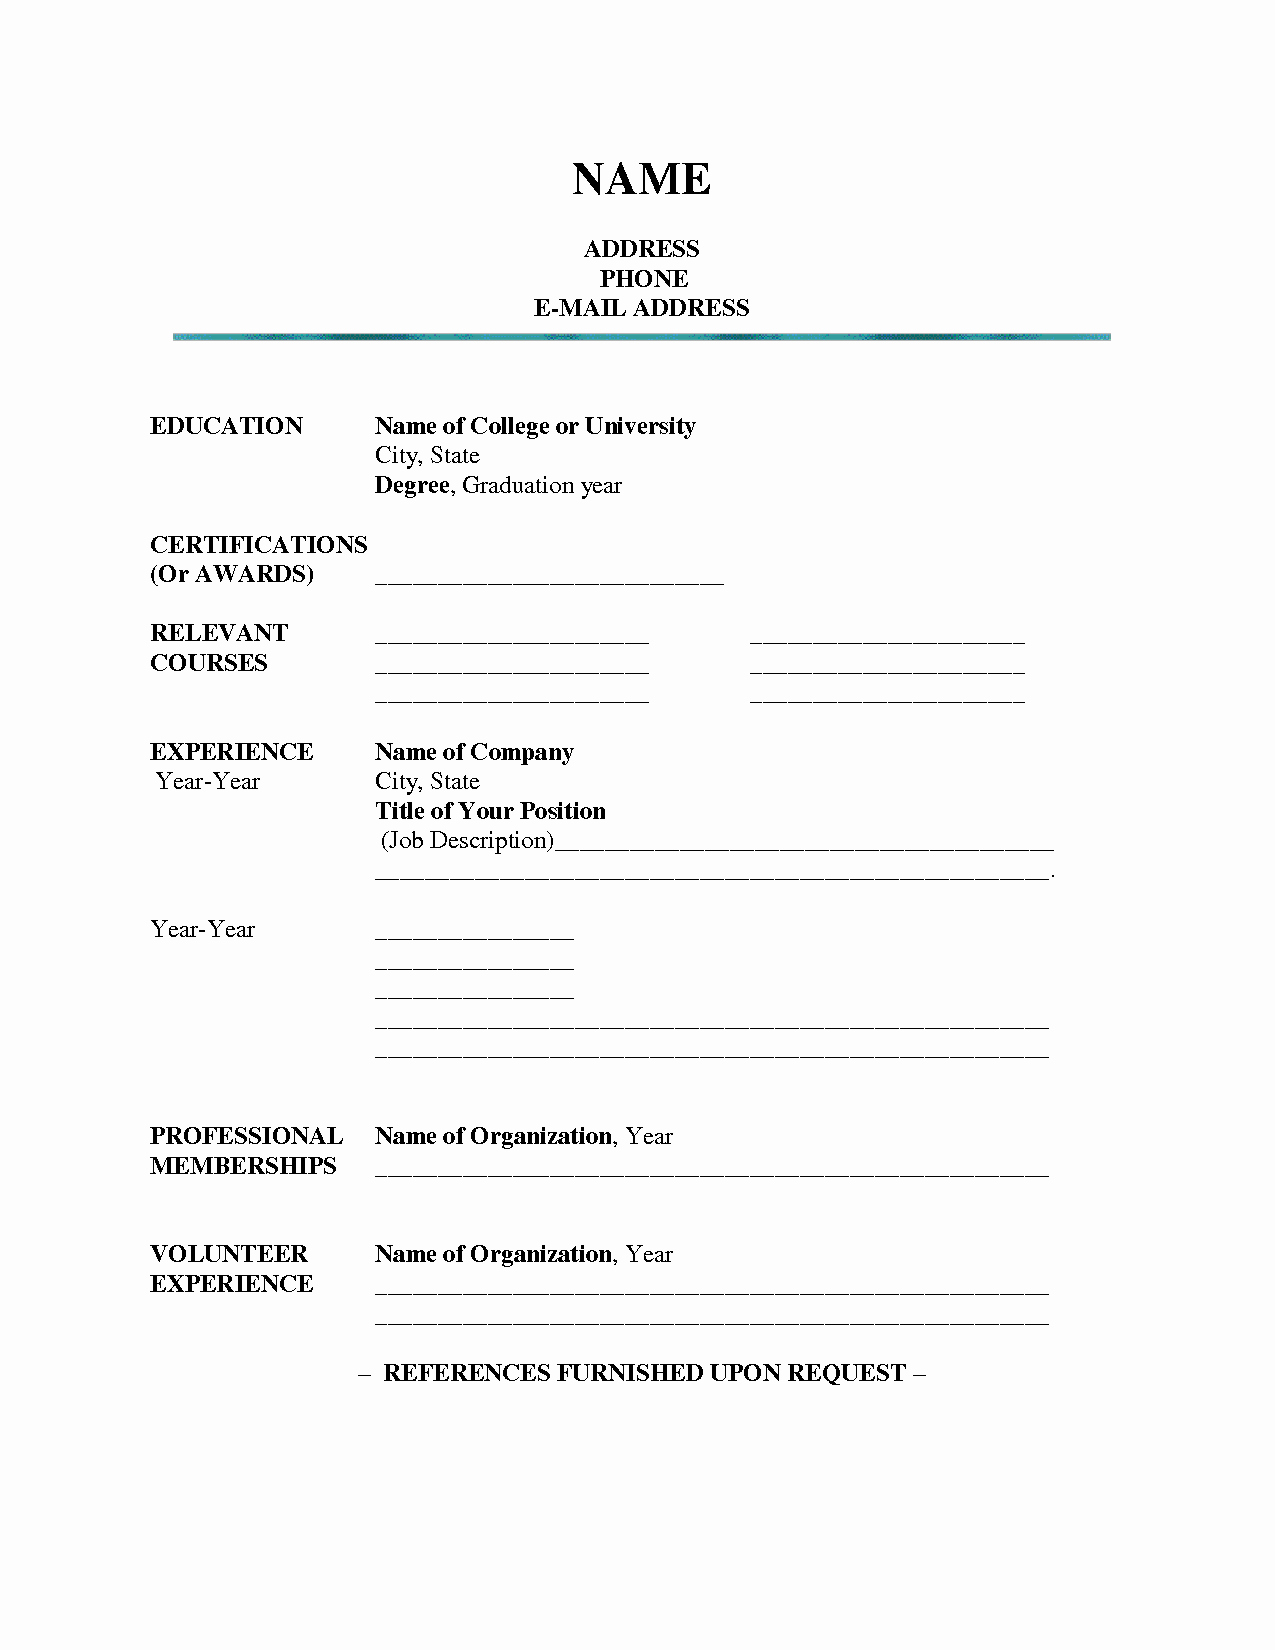 Cv and Cover Letter Template Luxury Blank Resume Templates for Students Resume Builderresume